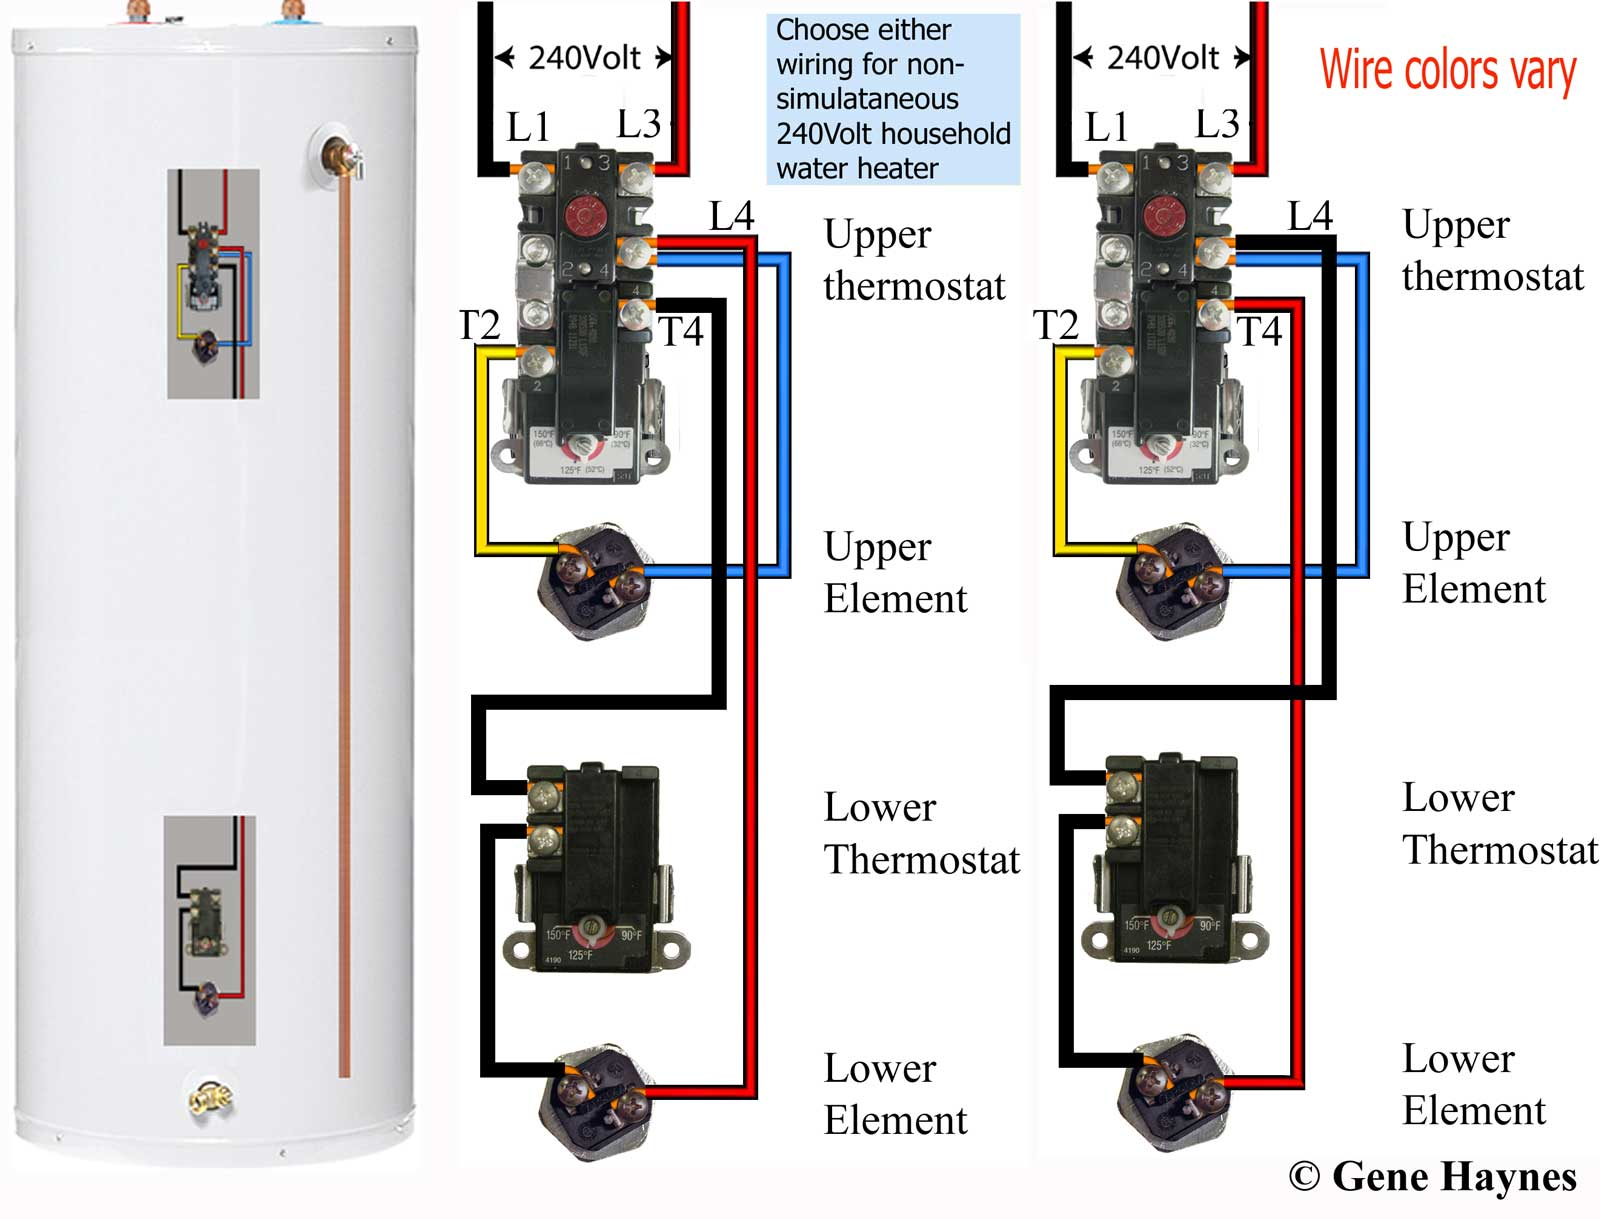 see larger, residential dual-element water heater  both elements are never  'on' at same time unless tank is wired for other purpose (see owners  manual)